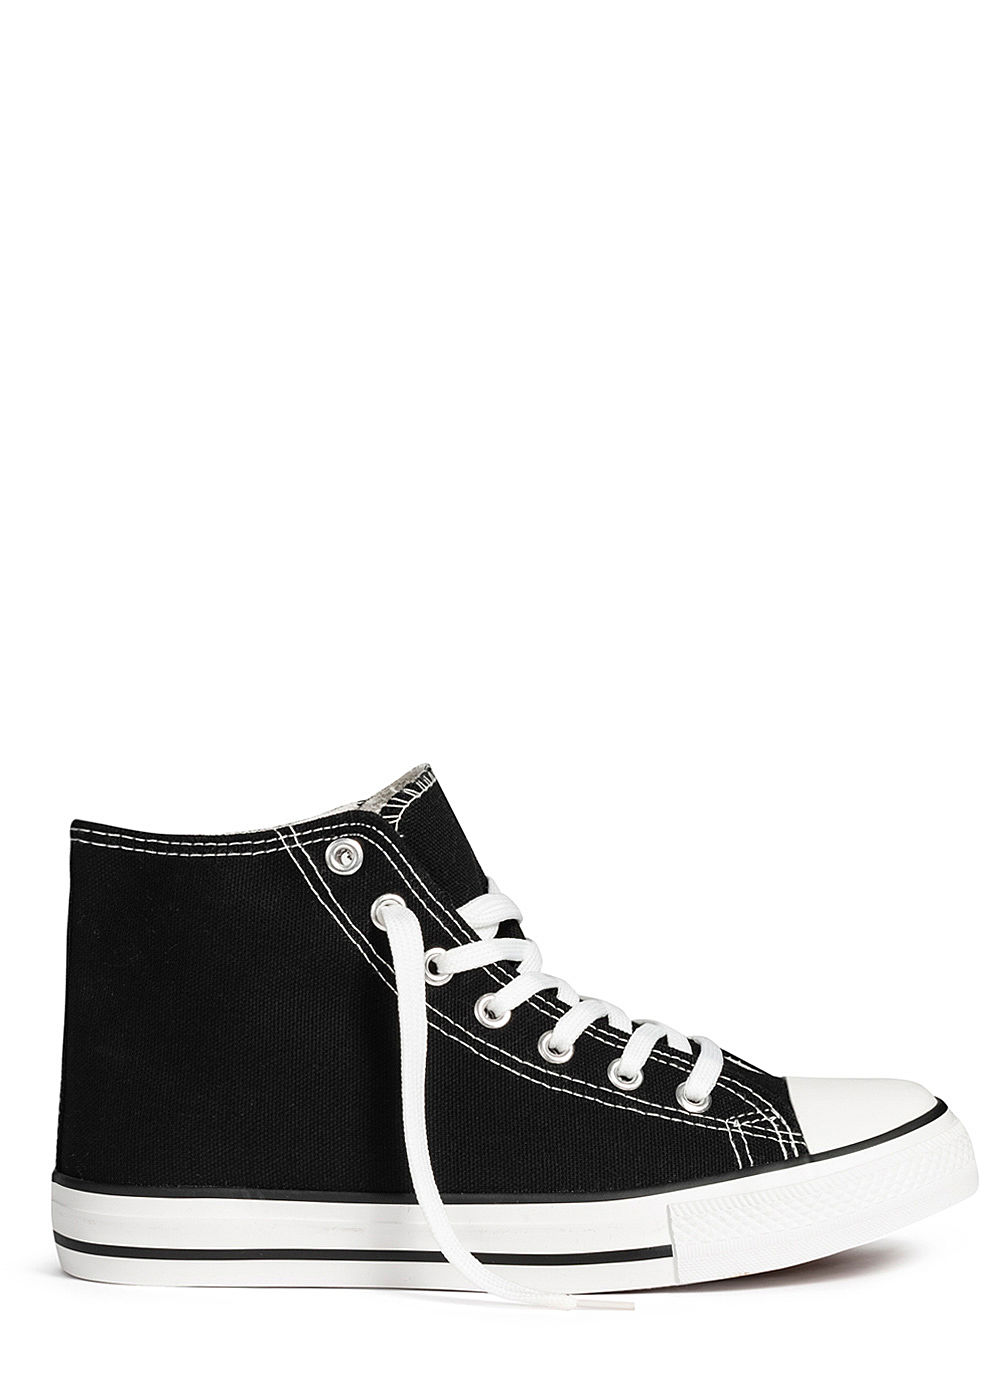 Seventyseven Lifestyle Damen Schuh High Canvas Sneaker